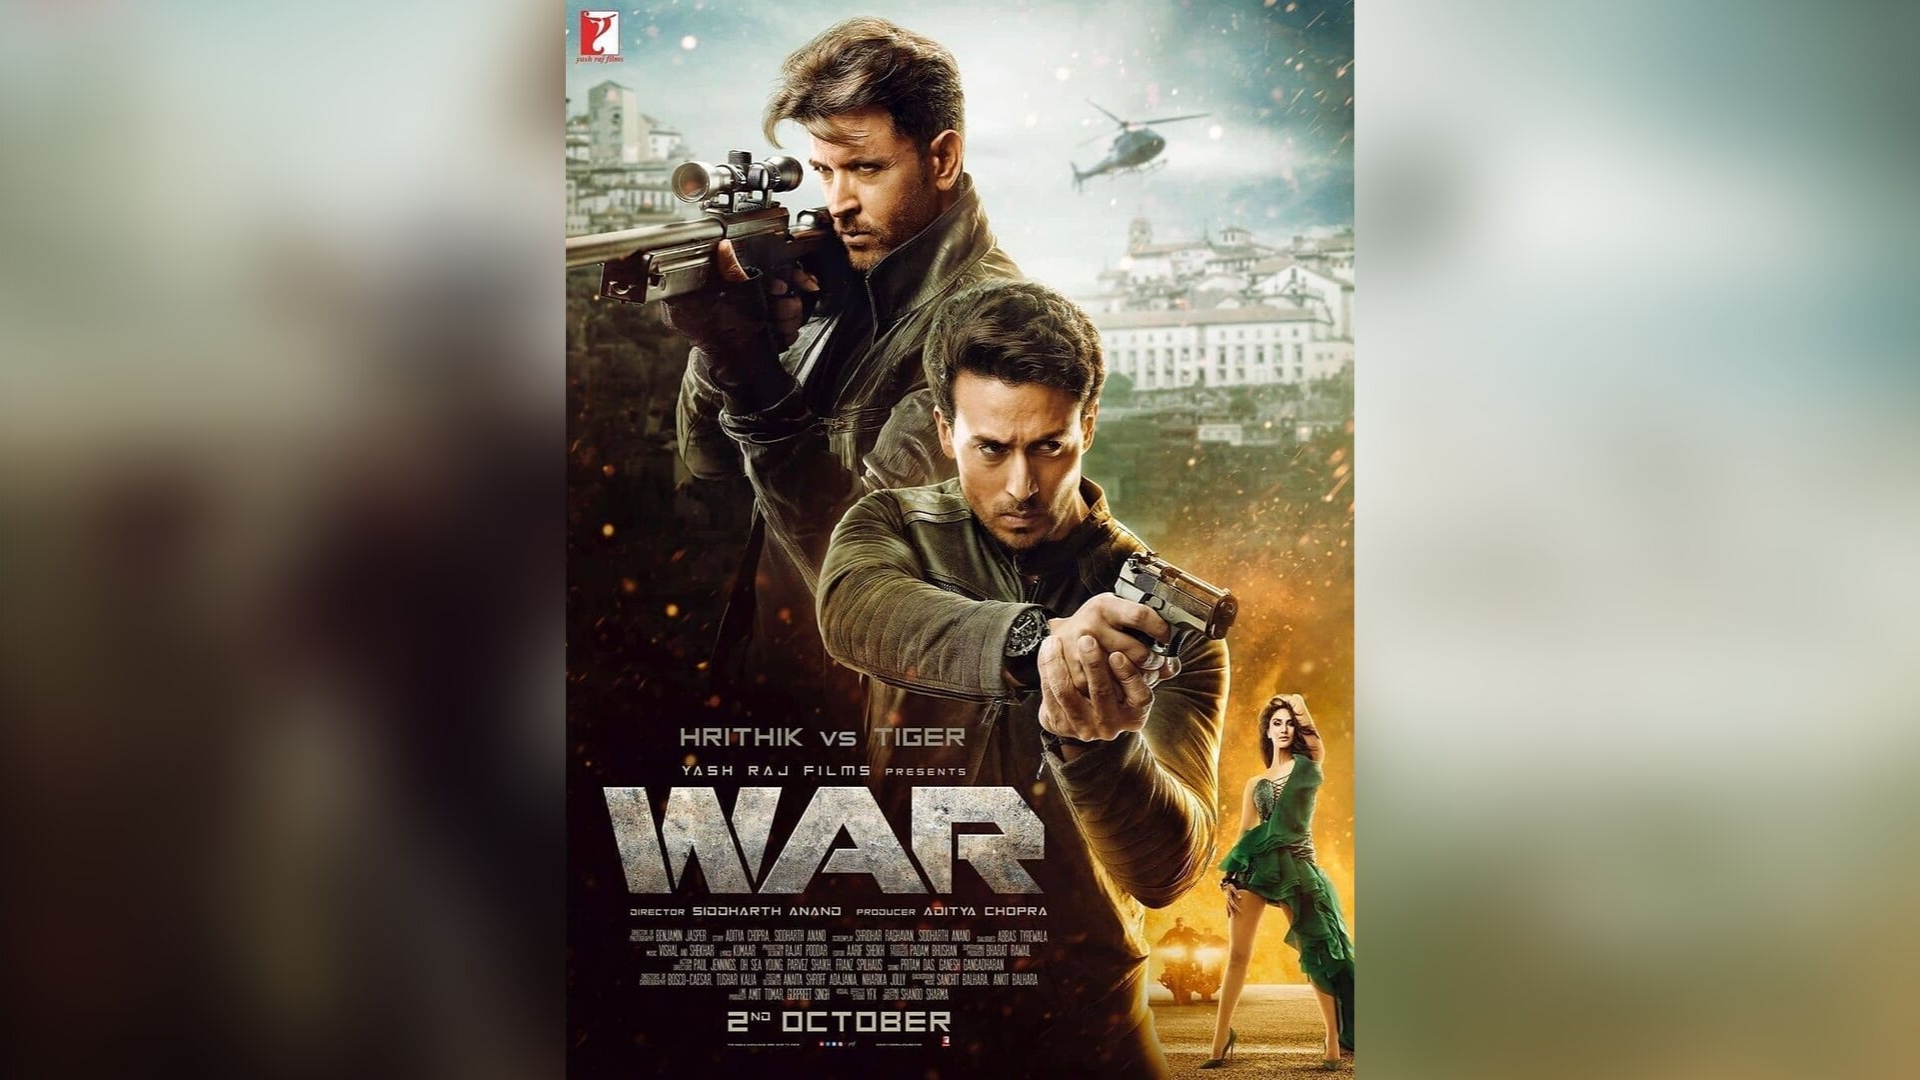 War Becomes Second-Highest Grosser of 2019, Highest in N. America